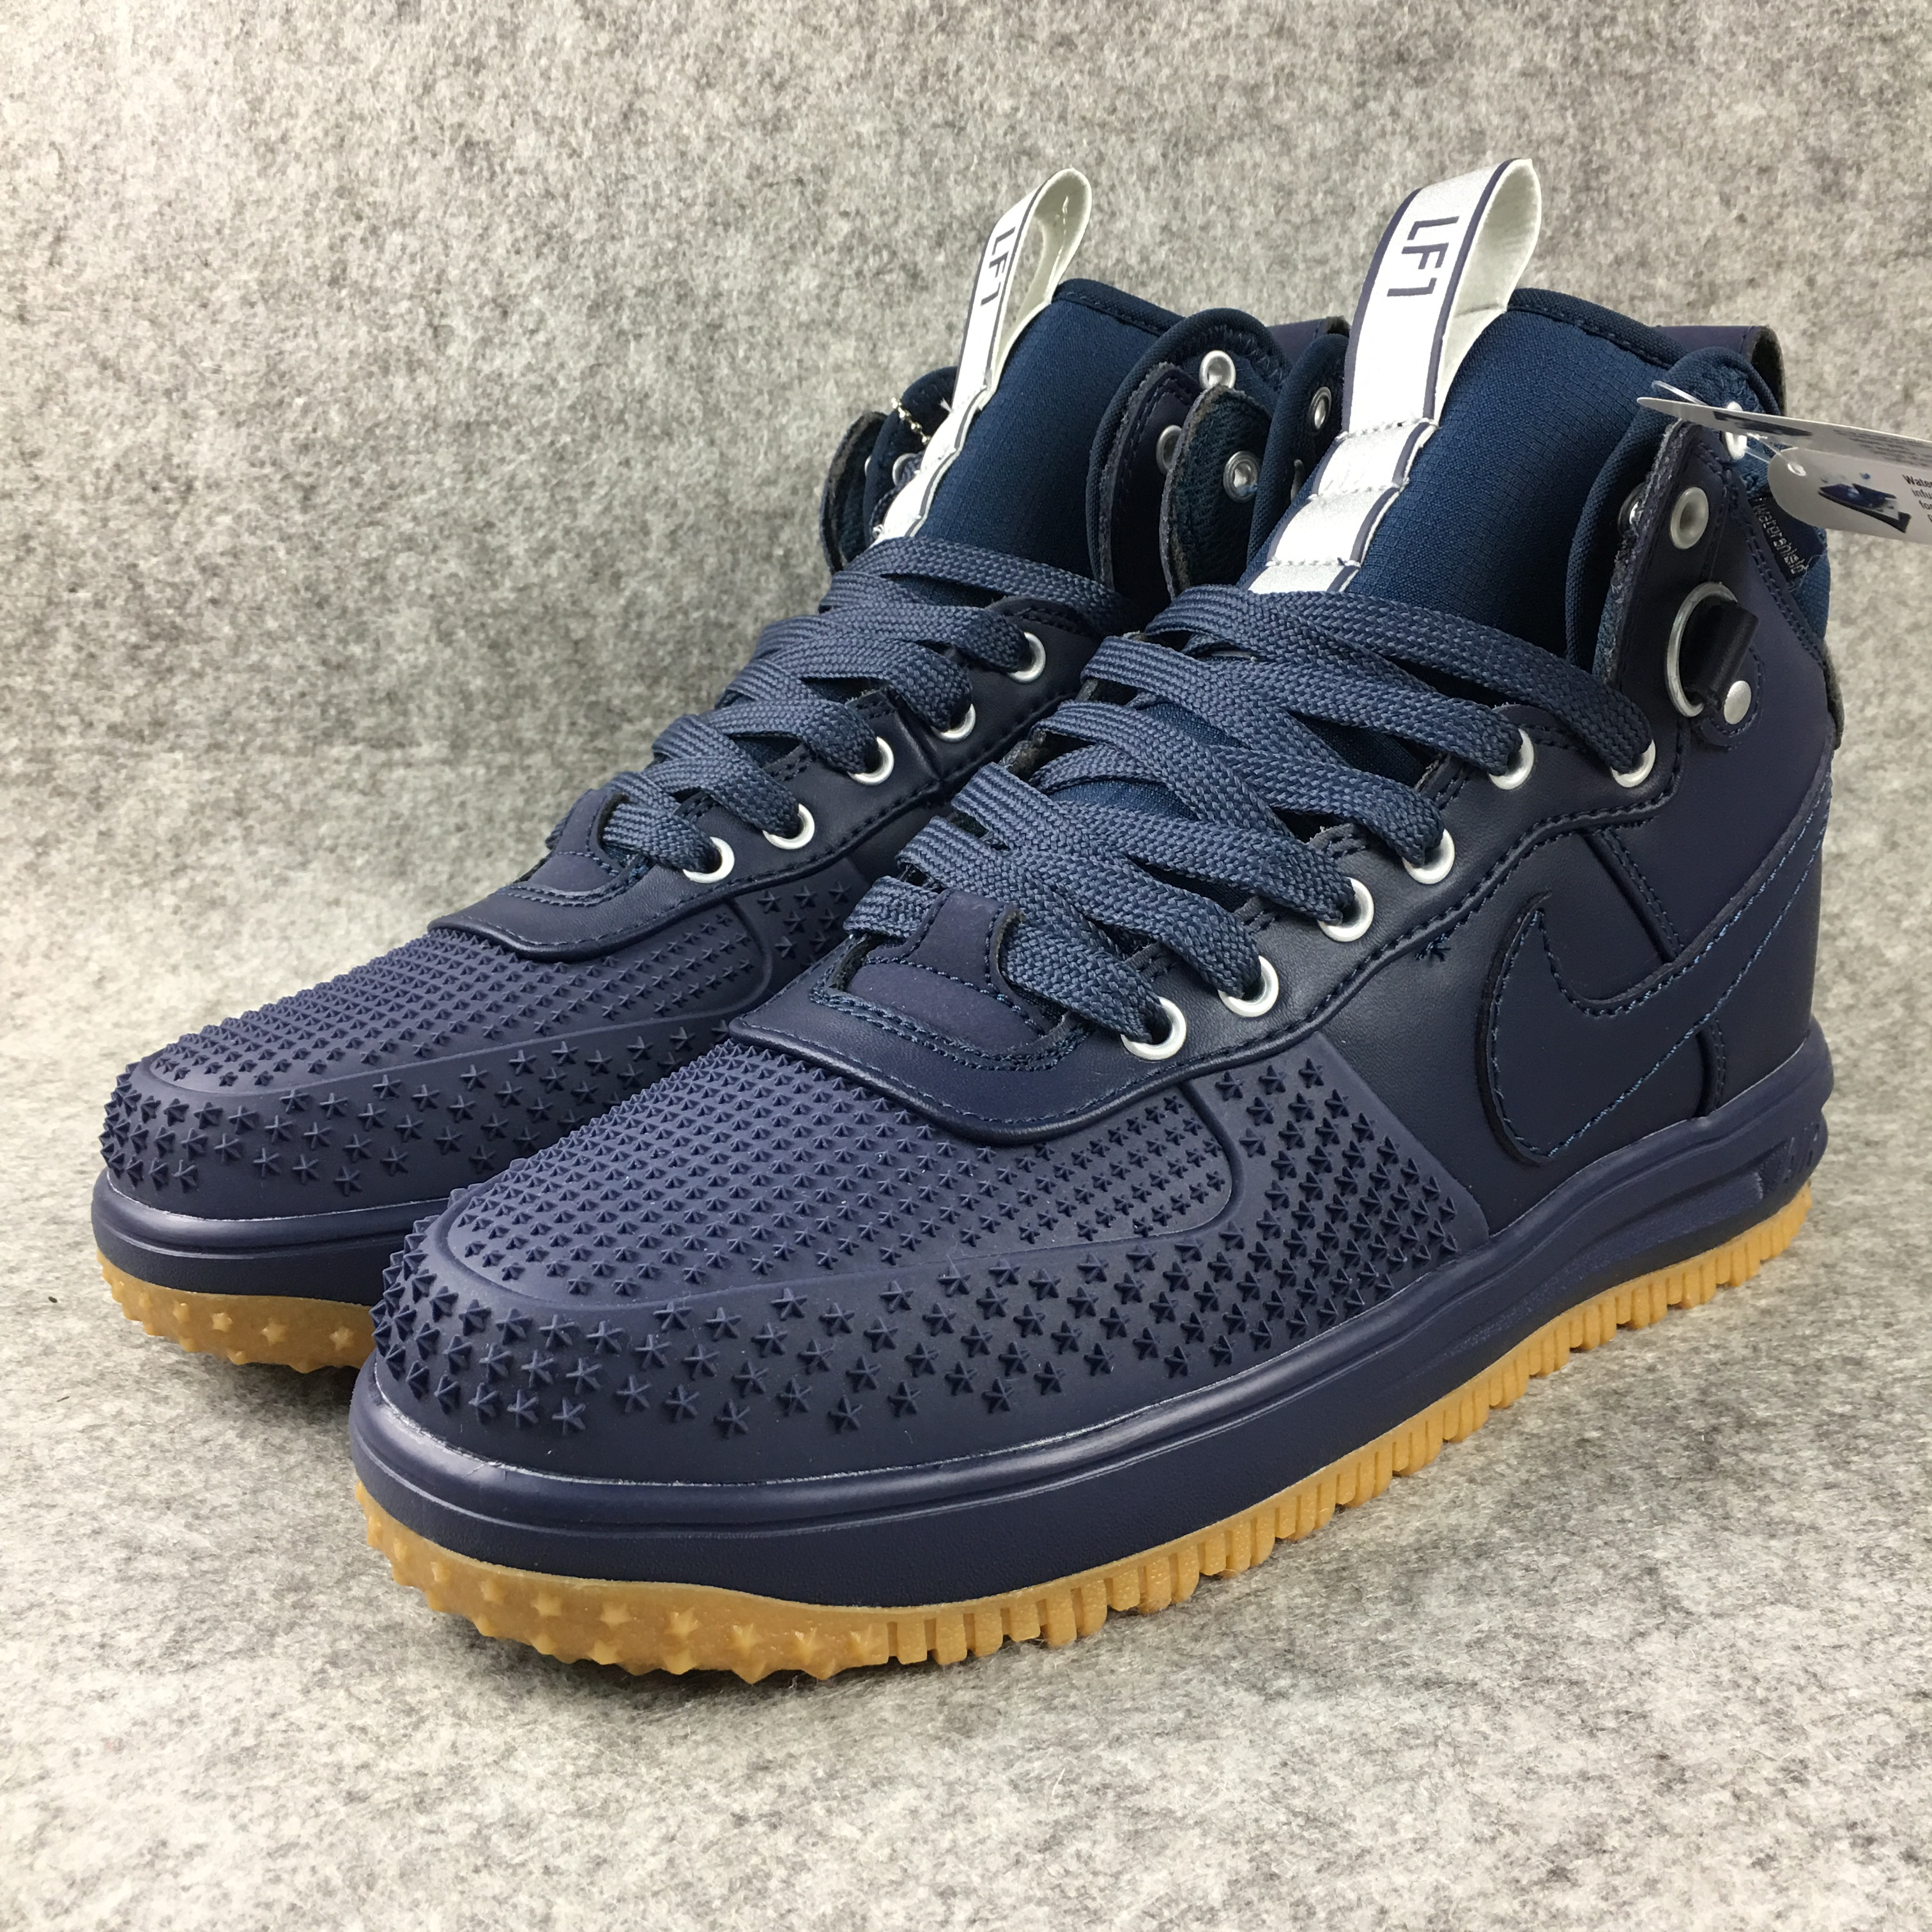 New Nike Lunar Force 1 High Deep Blue Gum Sole